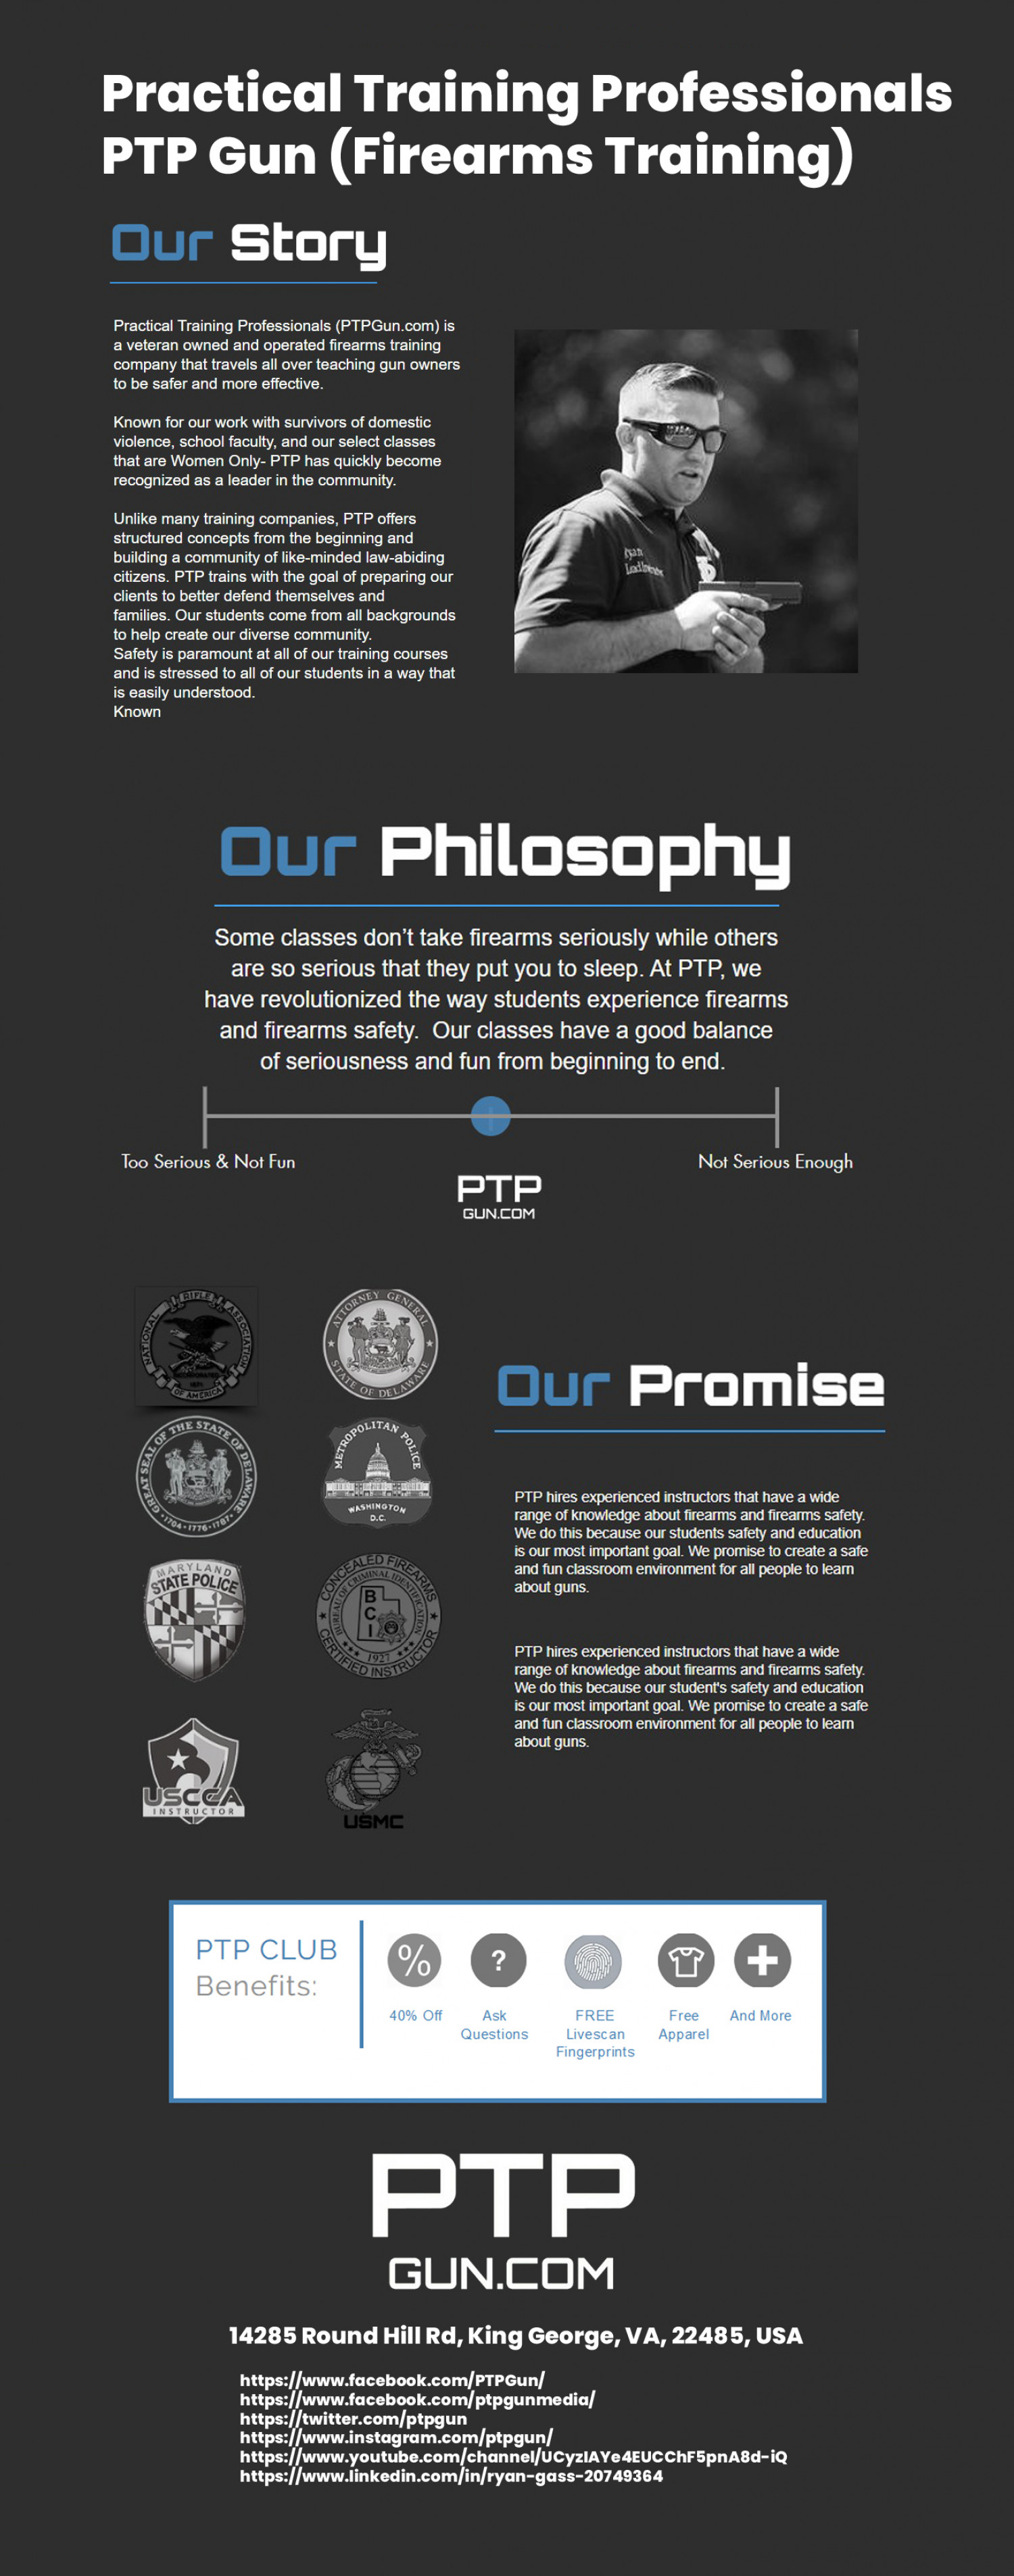 Practical Training Professionals - PTP Gun (Firearms Training) Infographic